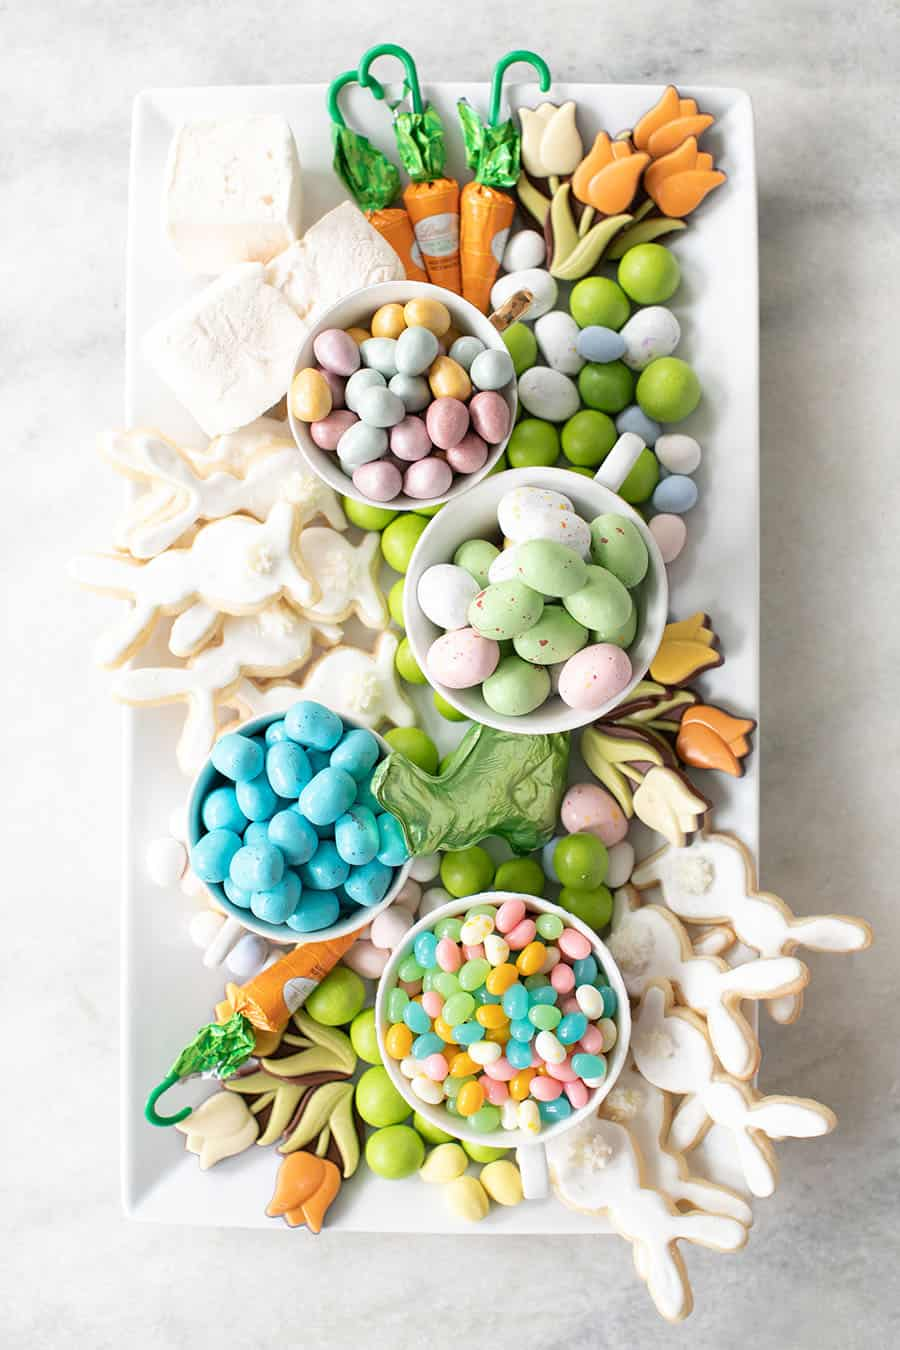 Tray of Easter candy on a marble table.